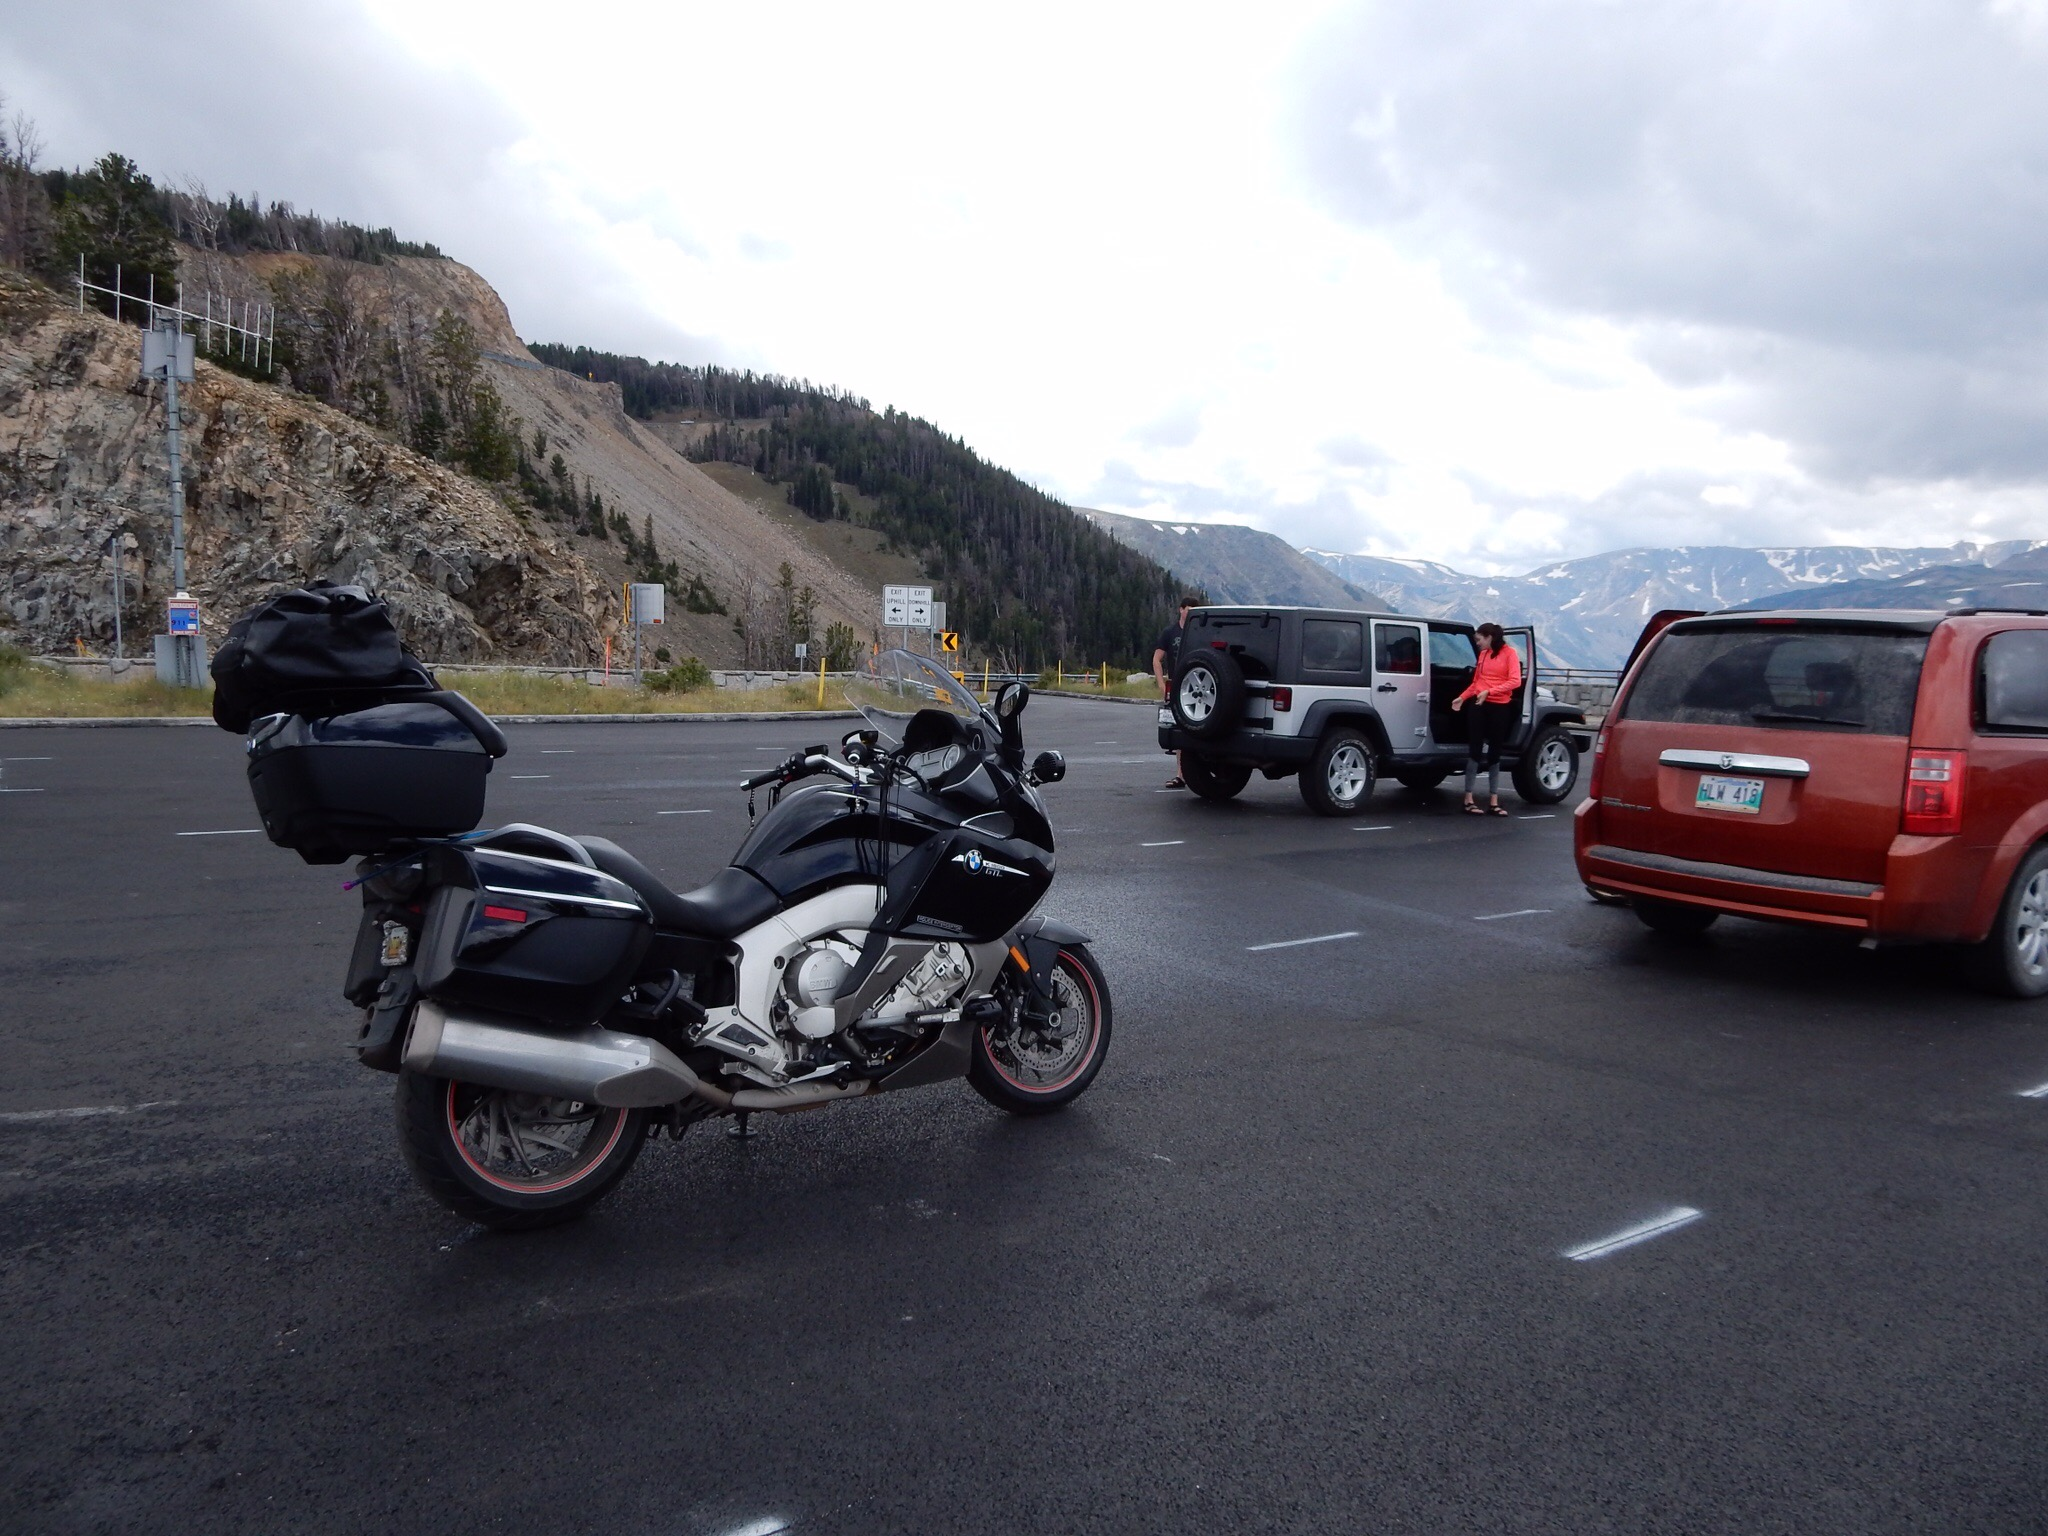 The Nightowl parked at one of the overlooks along Beartooth Pass.The Nightowl parked at one of the overlooks along Beartooth Pass.